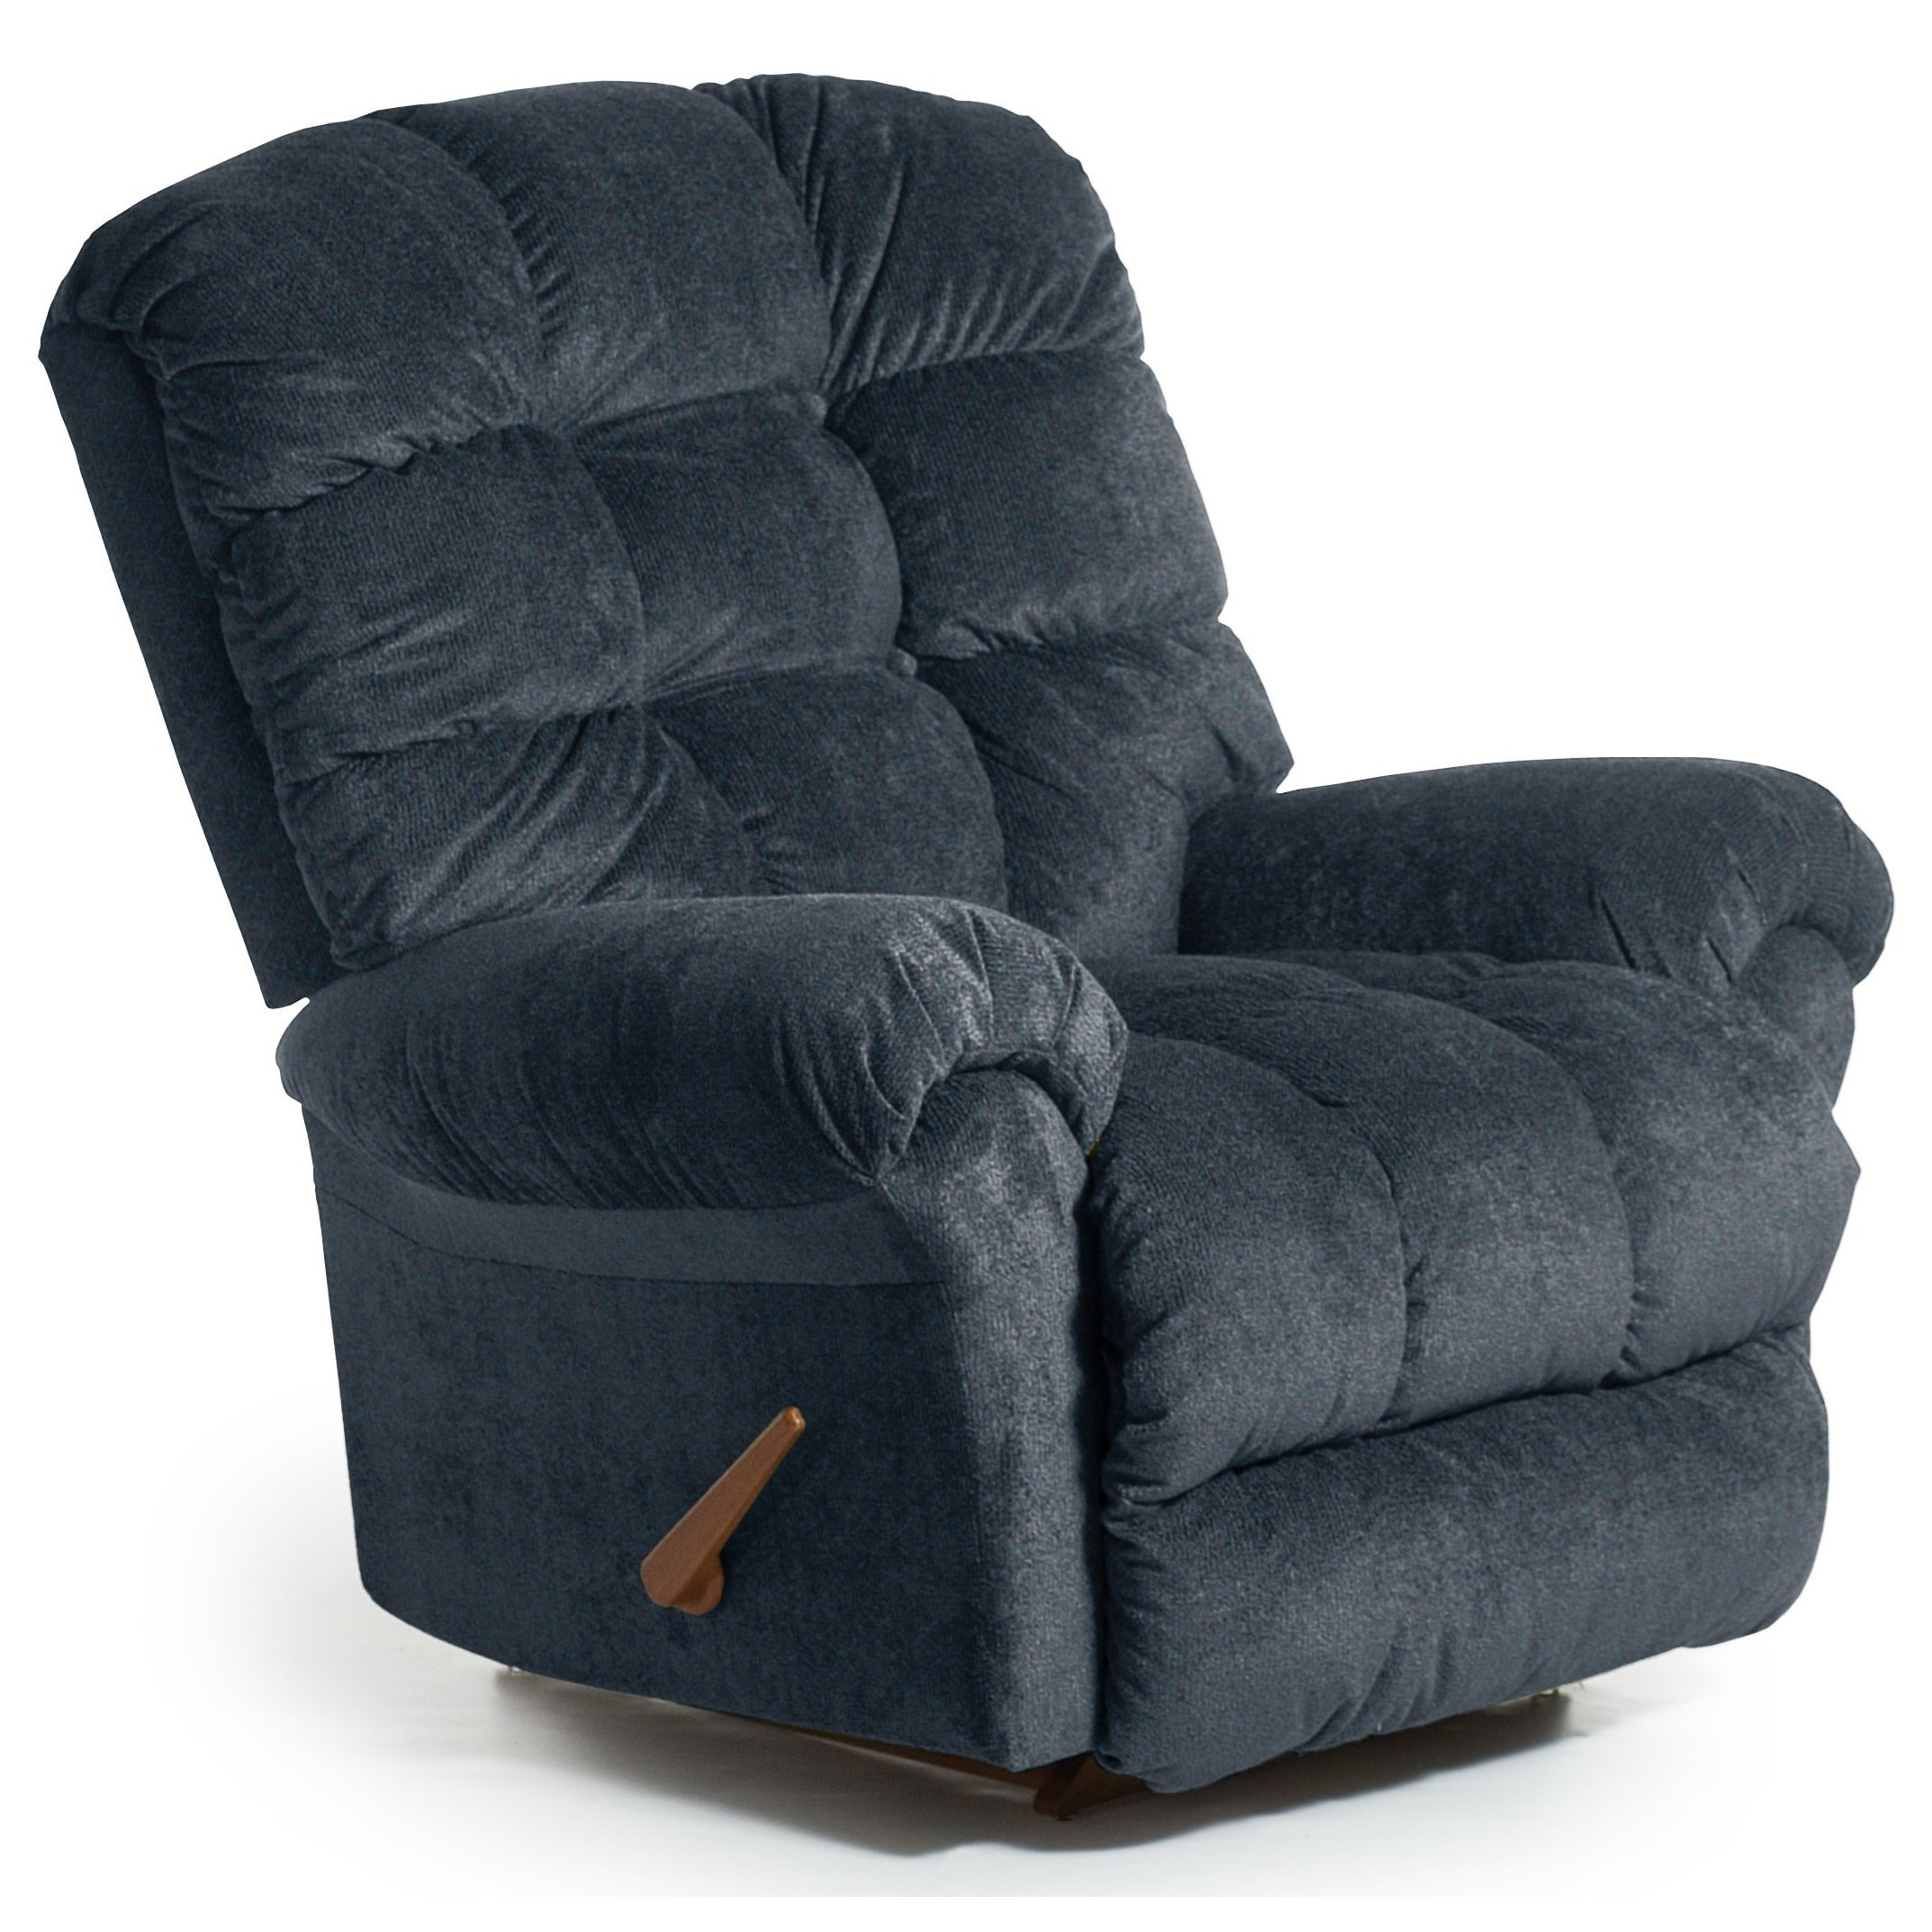 Recliners - BodyRest BodyRest Rocker Recliner by Best Home Furnishings at Best Home Furnishings